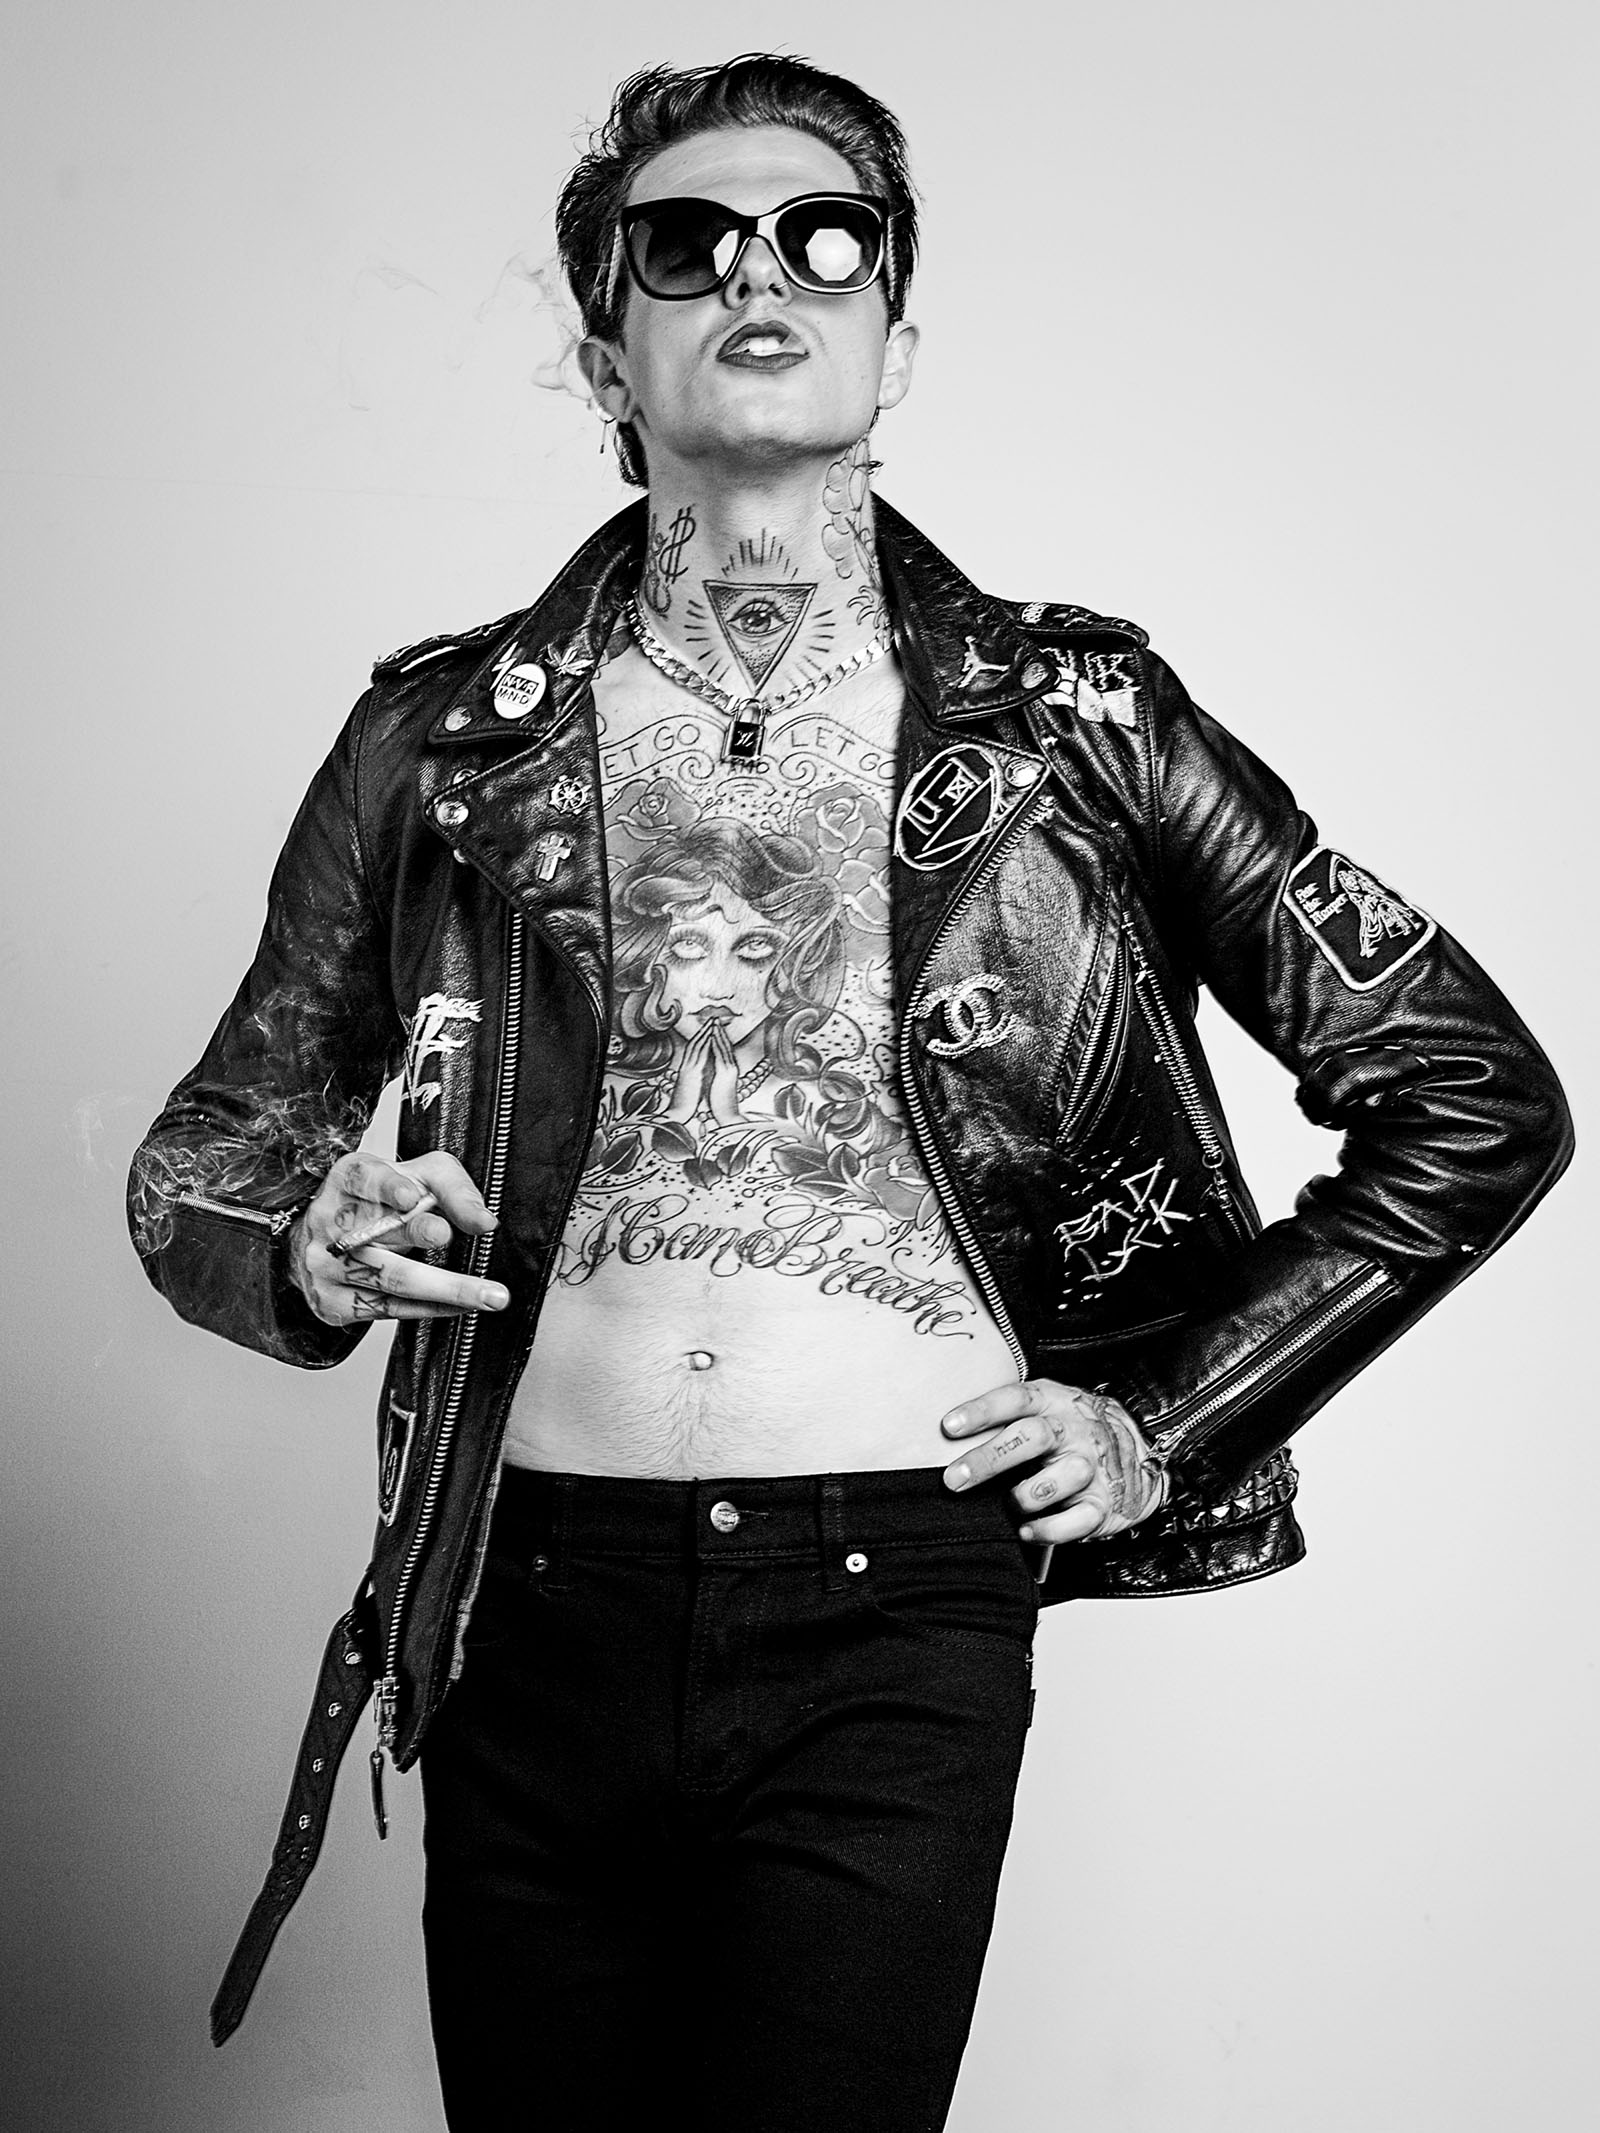 & Jessie English X JESSE RUTHERFORD0282-Exposure.jpg